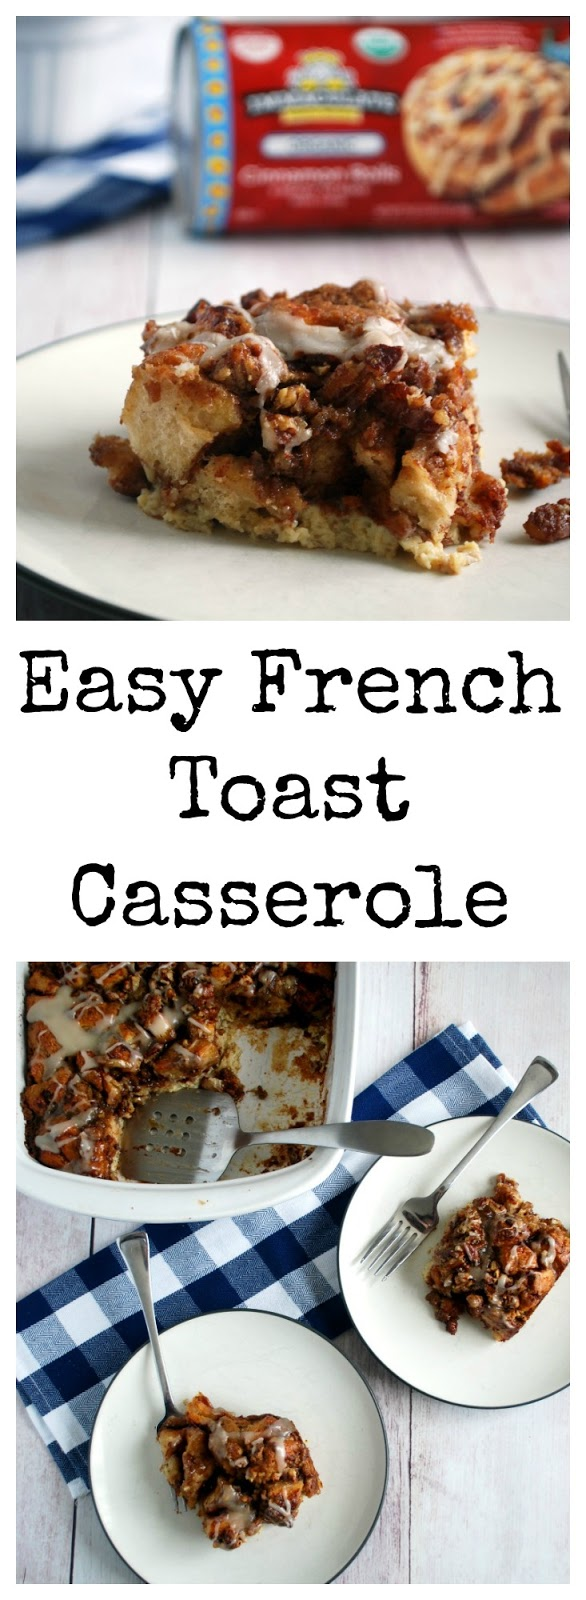 This decadent yet easy French Toast Casserole is a lovely way to breakfast on a special holiday. It's custardy, filled with cinnamon & toasted pecans & so easy!